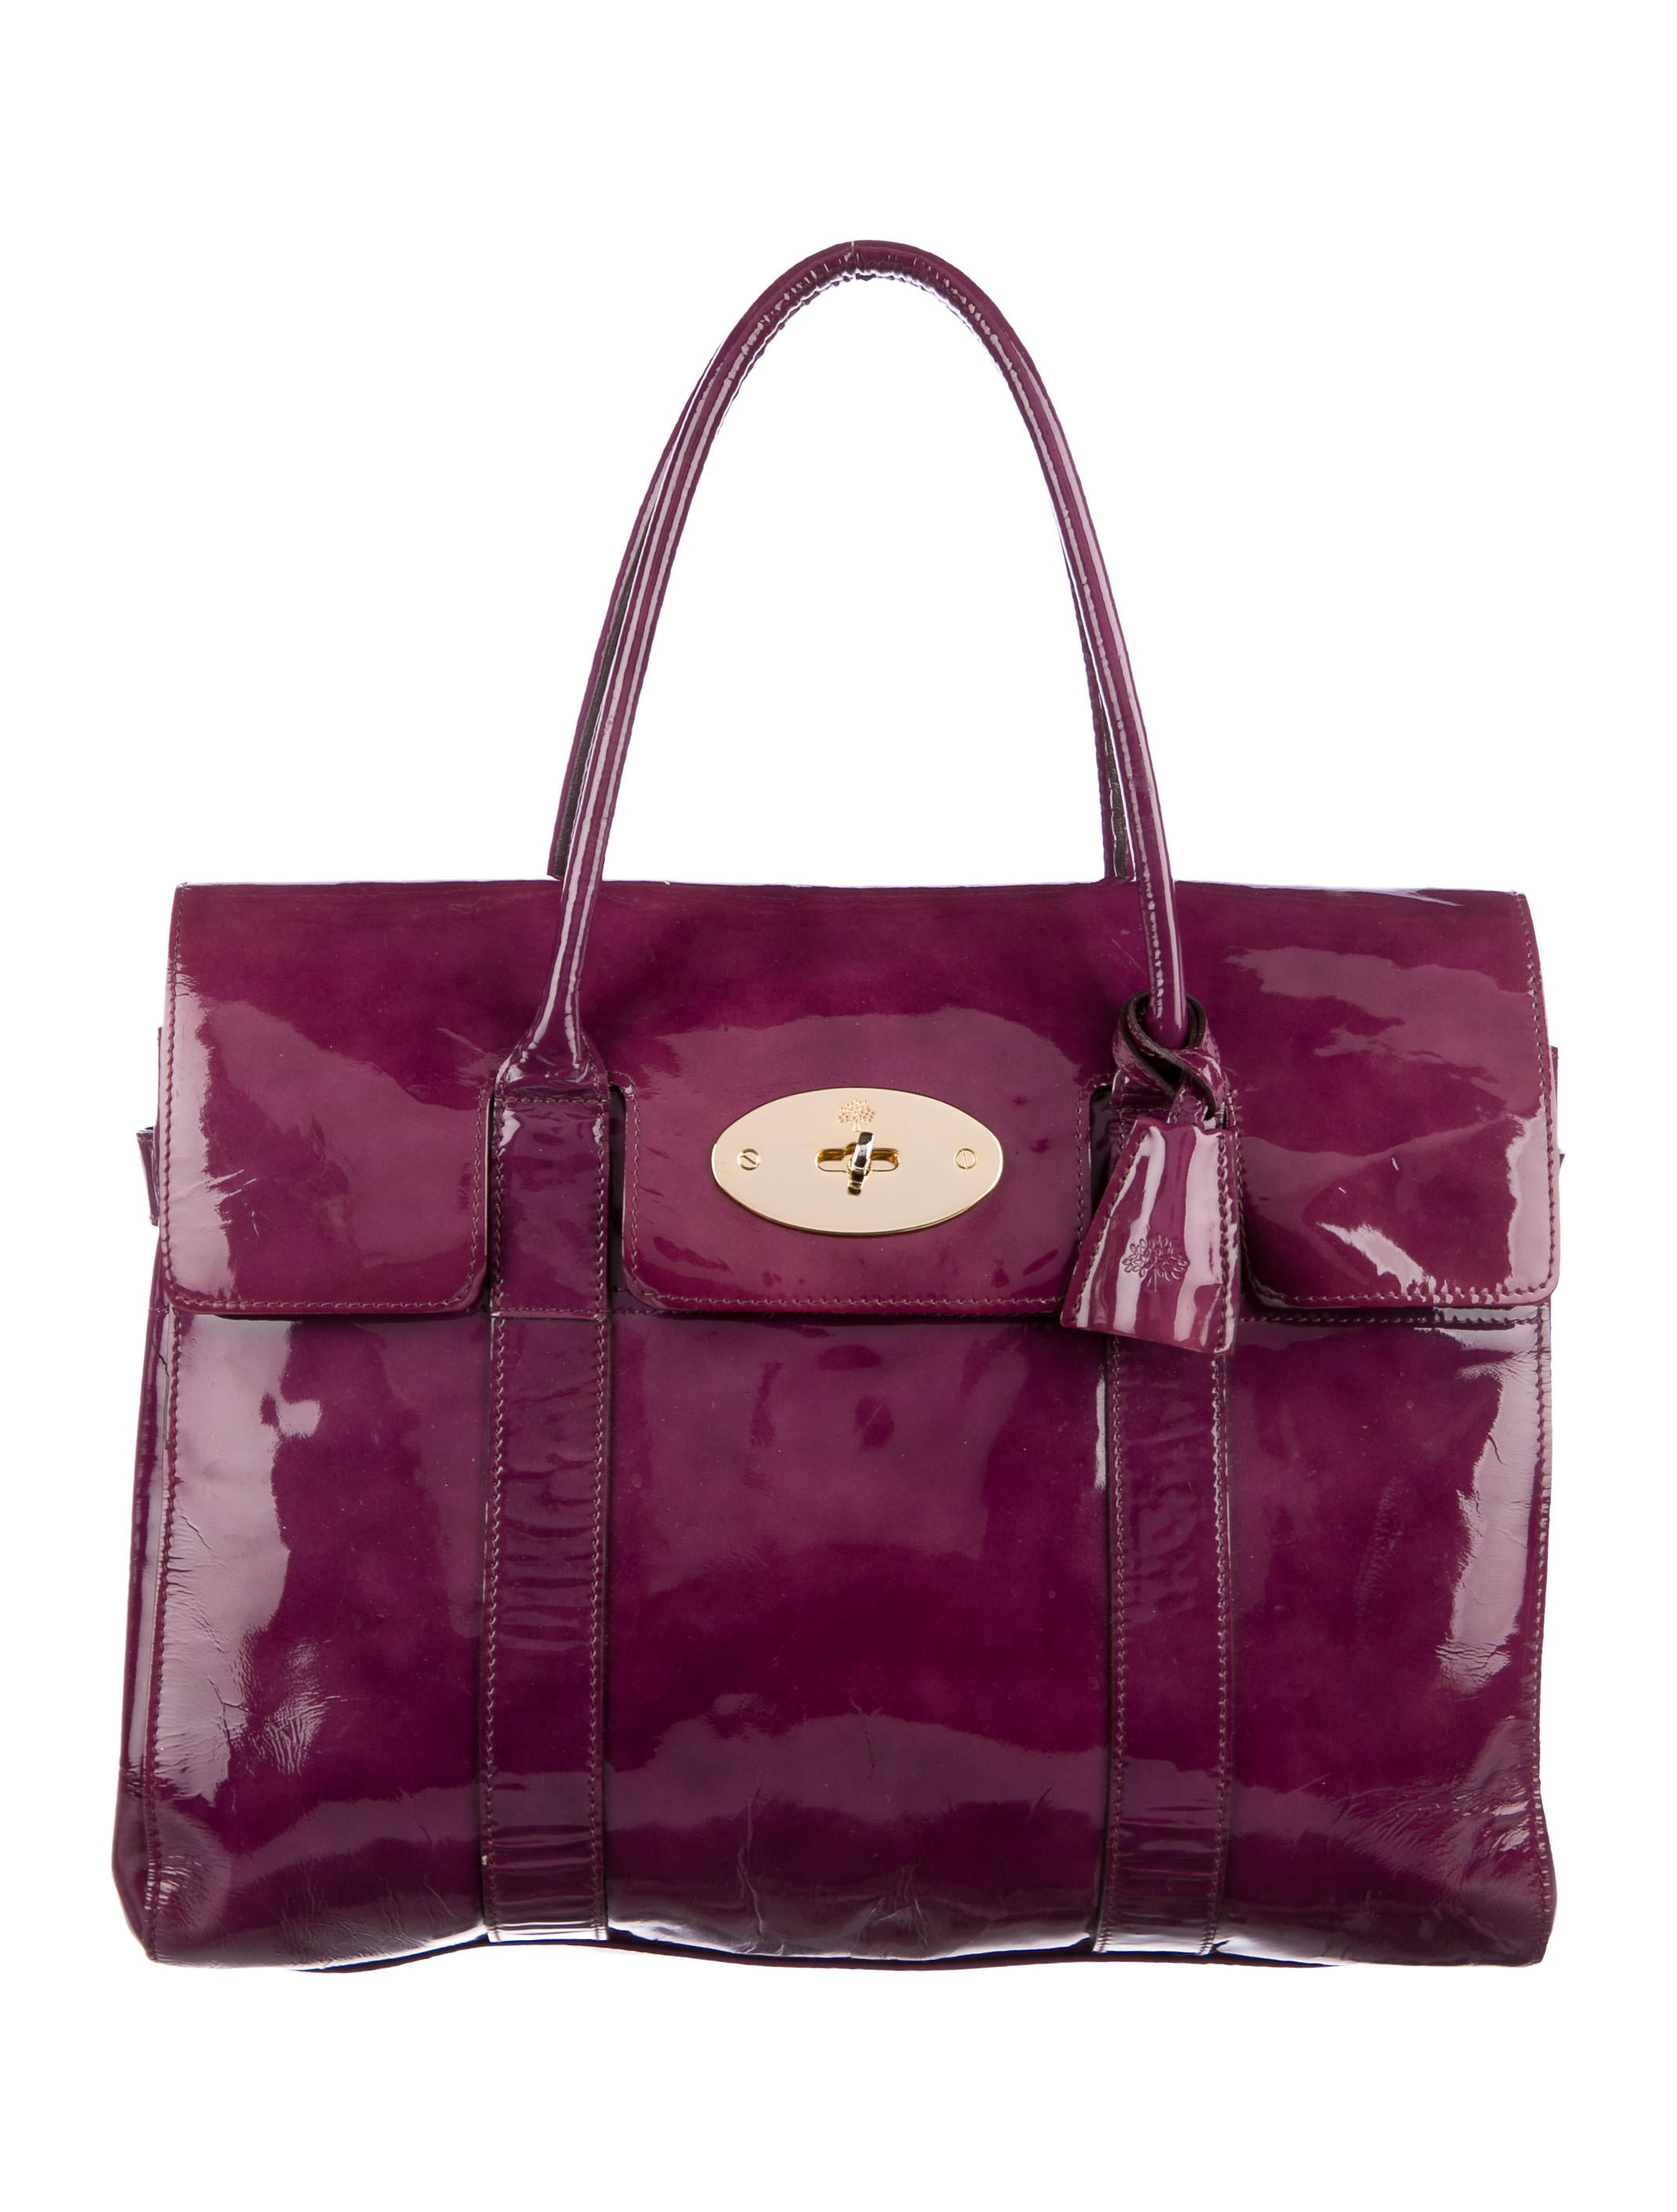 Mulberry bayswater bag handbags mul23170 the realreal for The bayswater